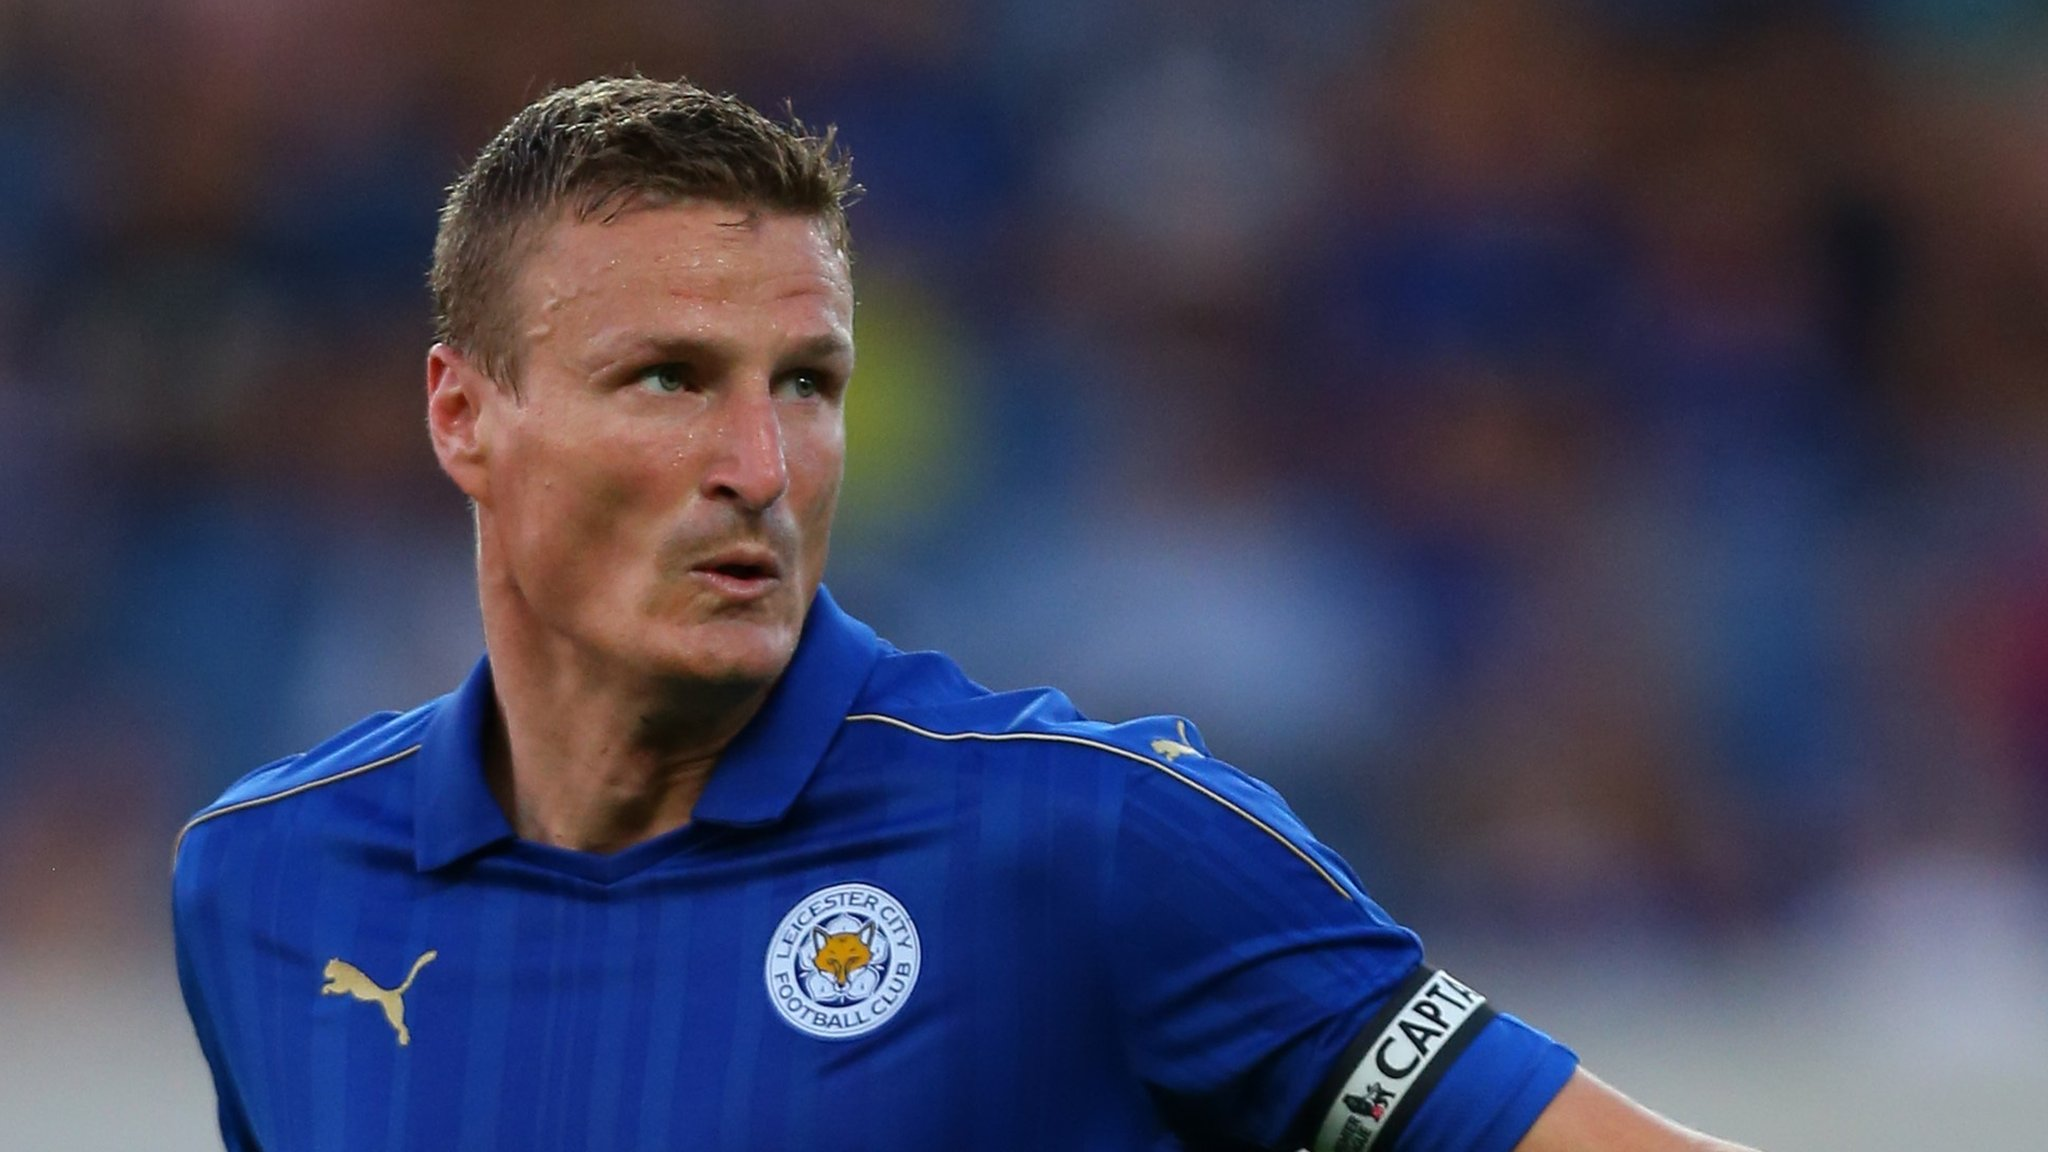 Robert Huth says he has retired and Derby County signing story 'couldn't be less true'